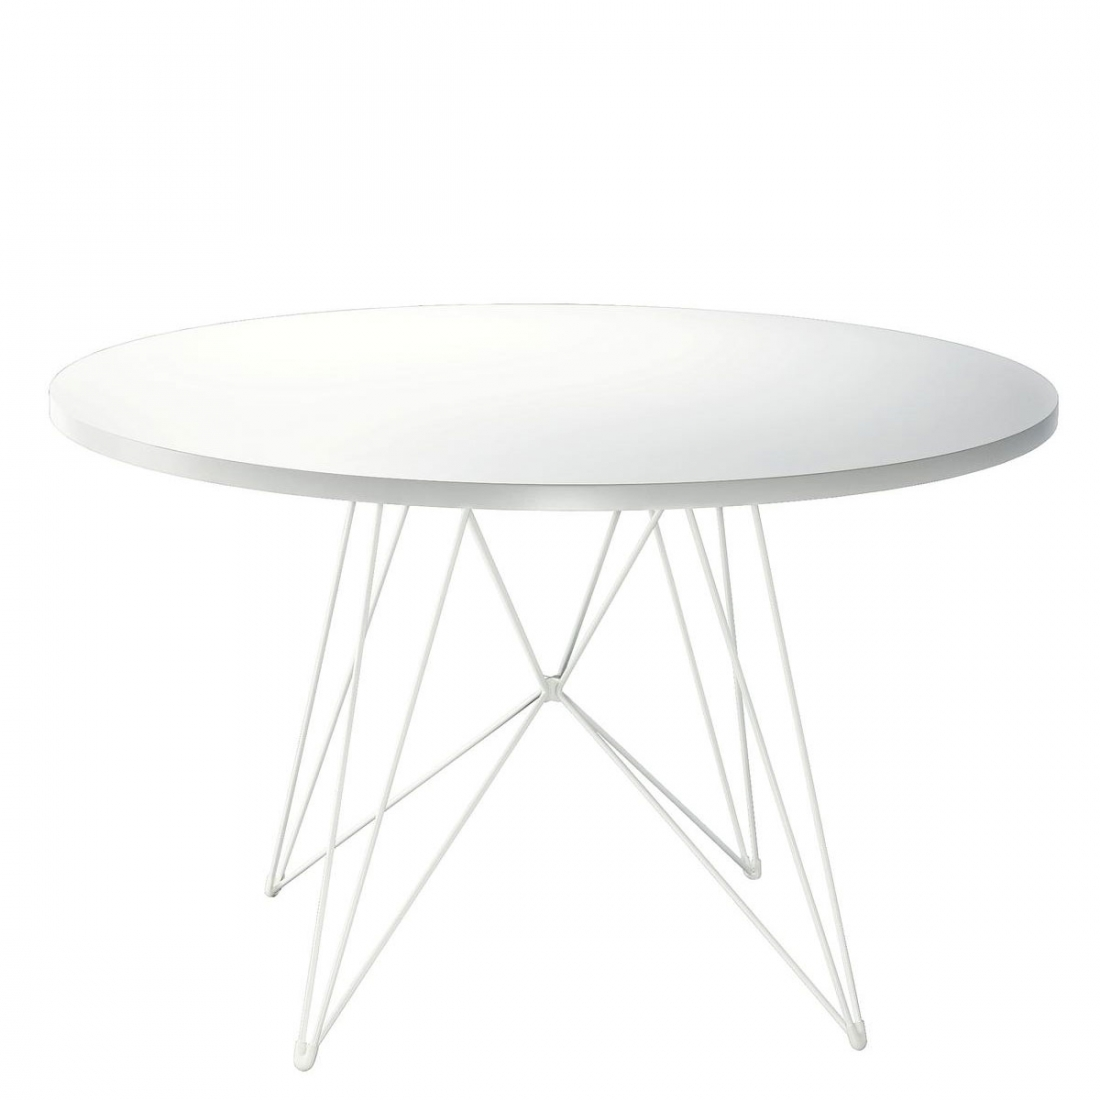 Table manger ronde zendart design for Plateau pour table a manger